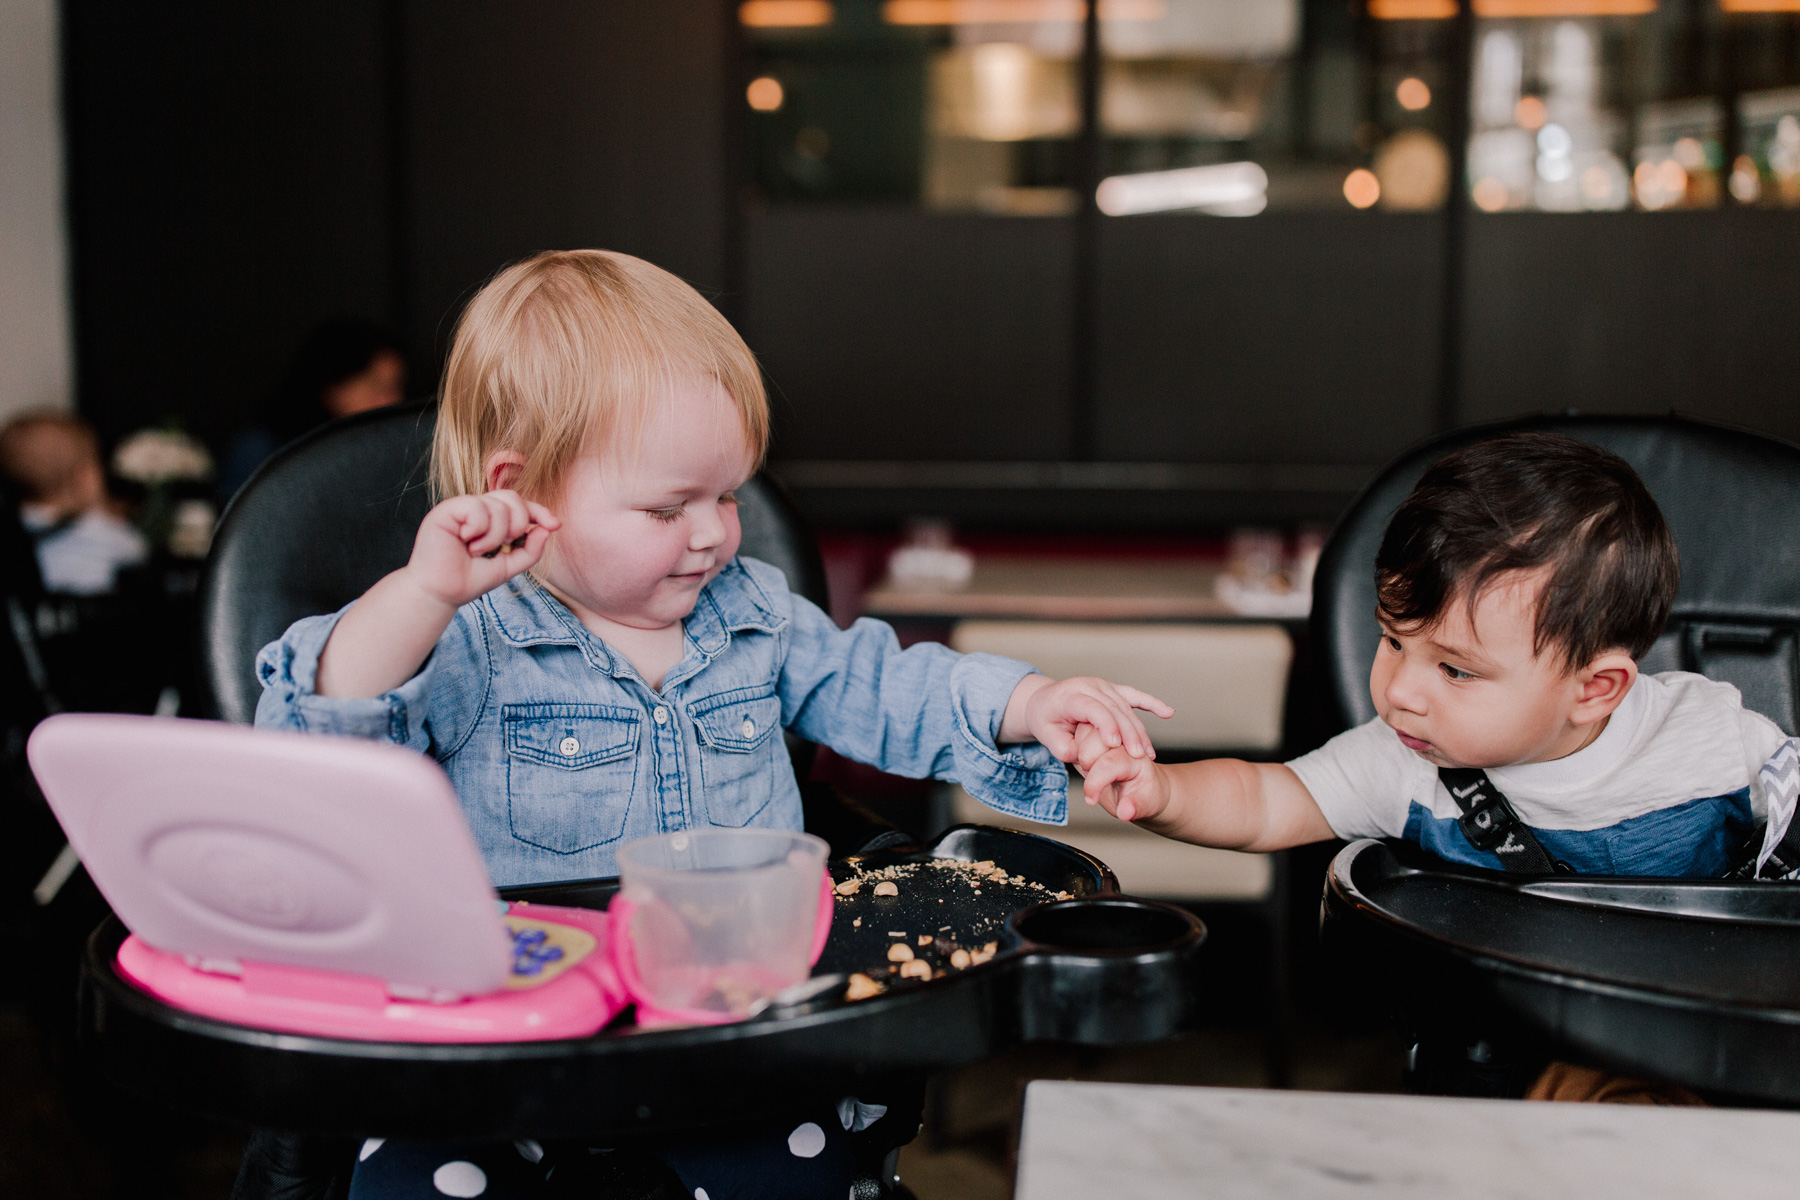 Emma and Zain. Yes, that's Emma slapping Zain's hand away from her snacks.